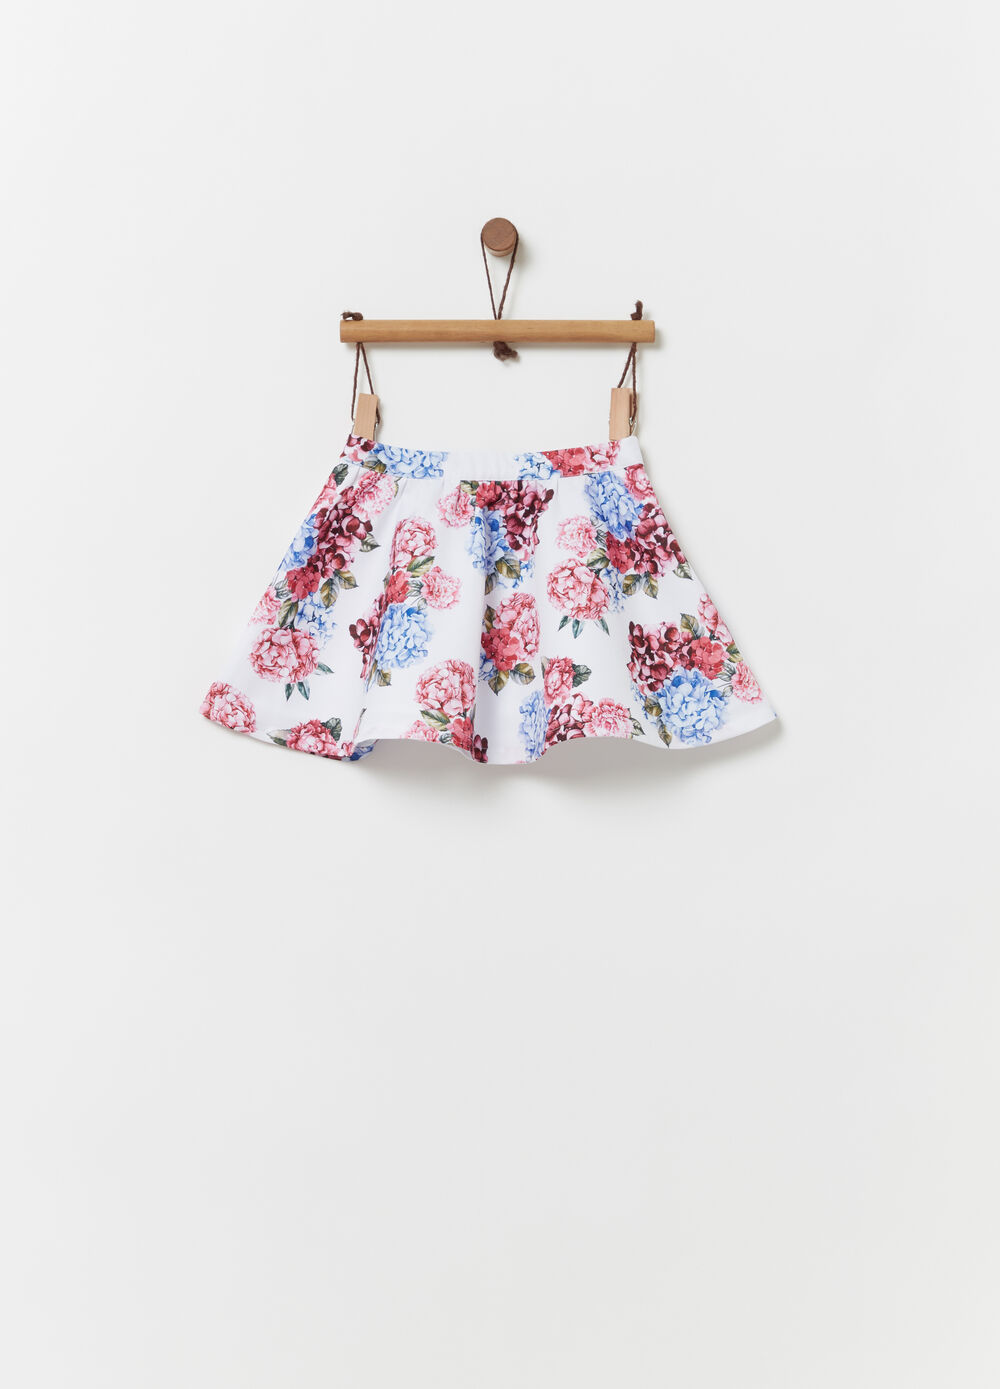 Flounced skirt with all-over floral print